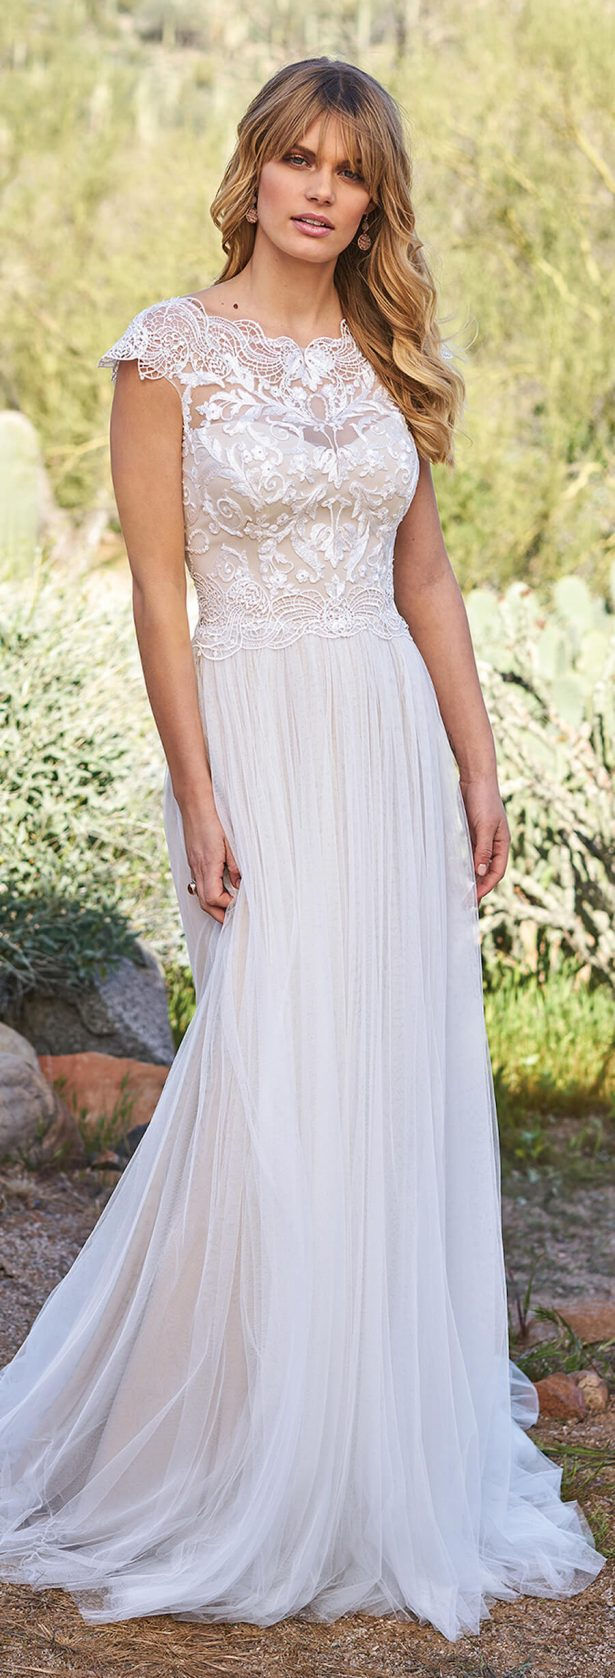 f59c7317a51 Lillian West Wedding Dress Collection Spring 2018 - Belle The Magazine